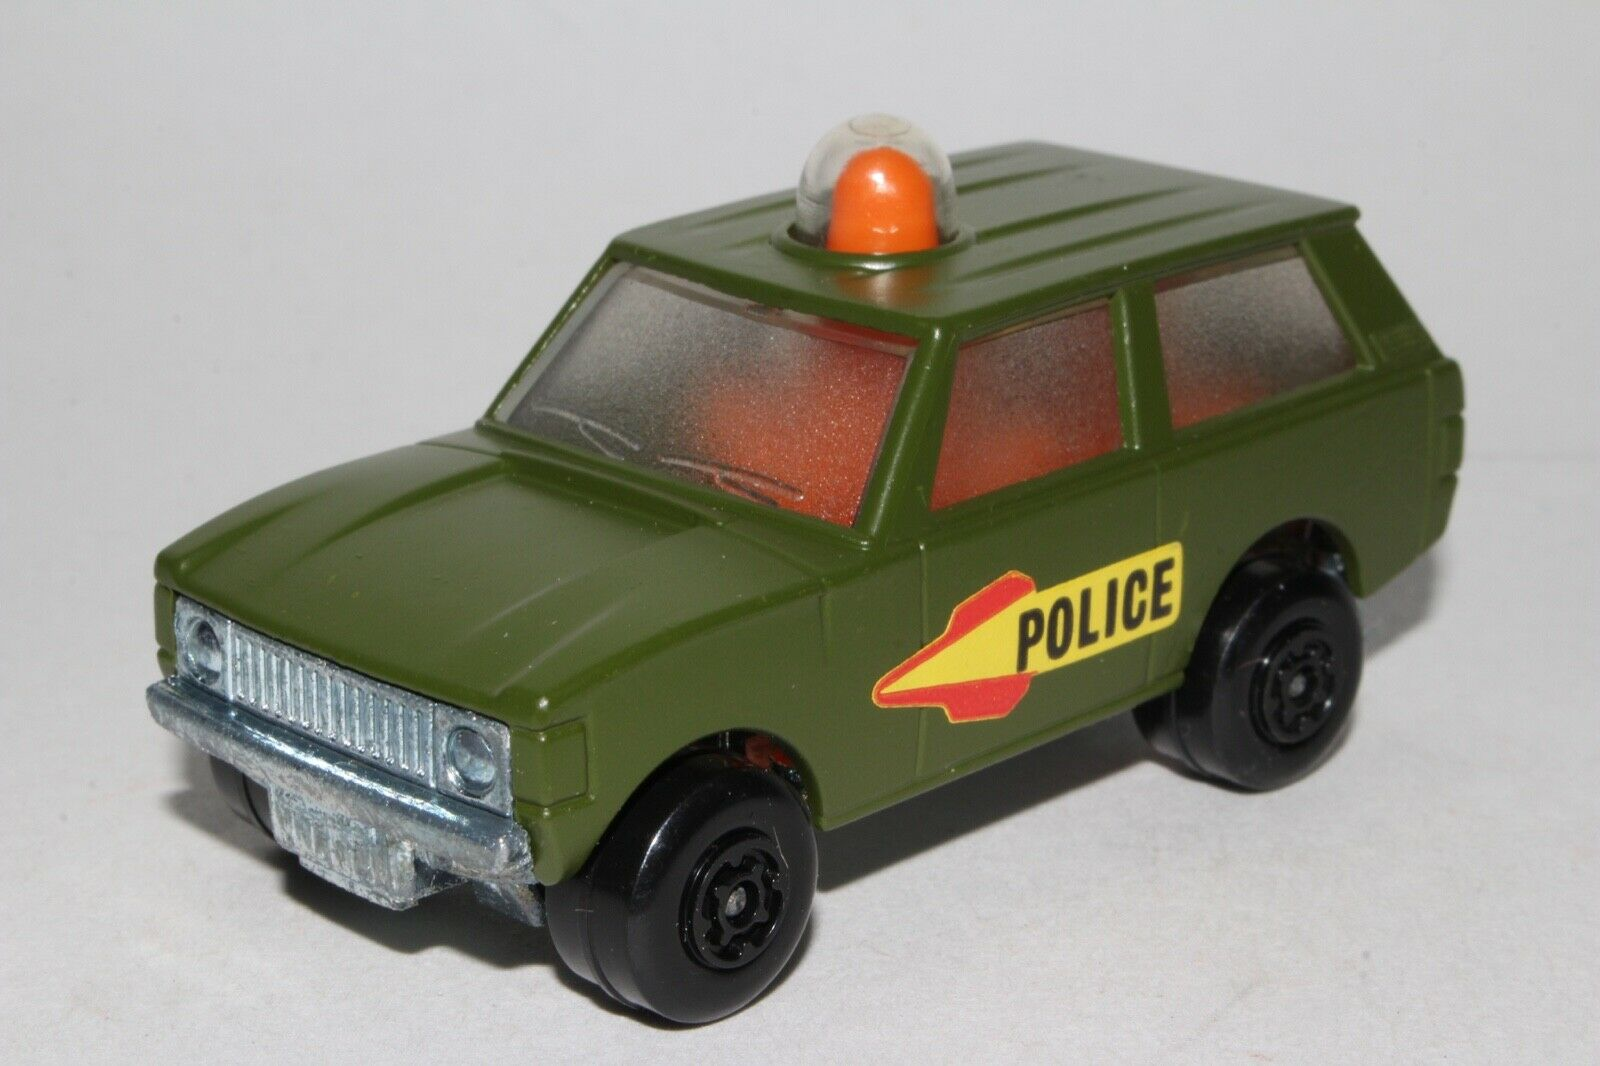 MATCHBOX SUPERFAST POLICE ROLL PATROL, SCARCE OLIVE DRAB, EXCELLENT